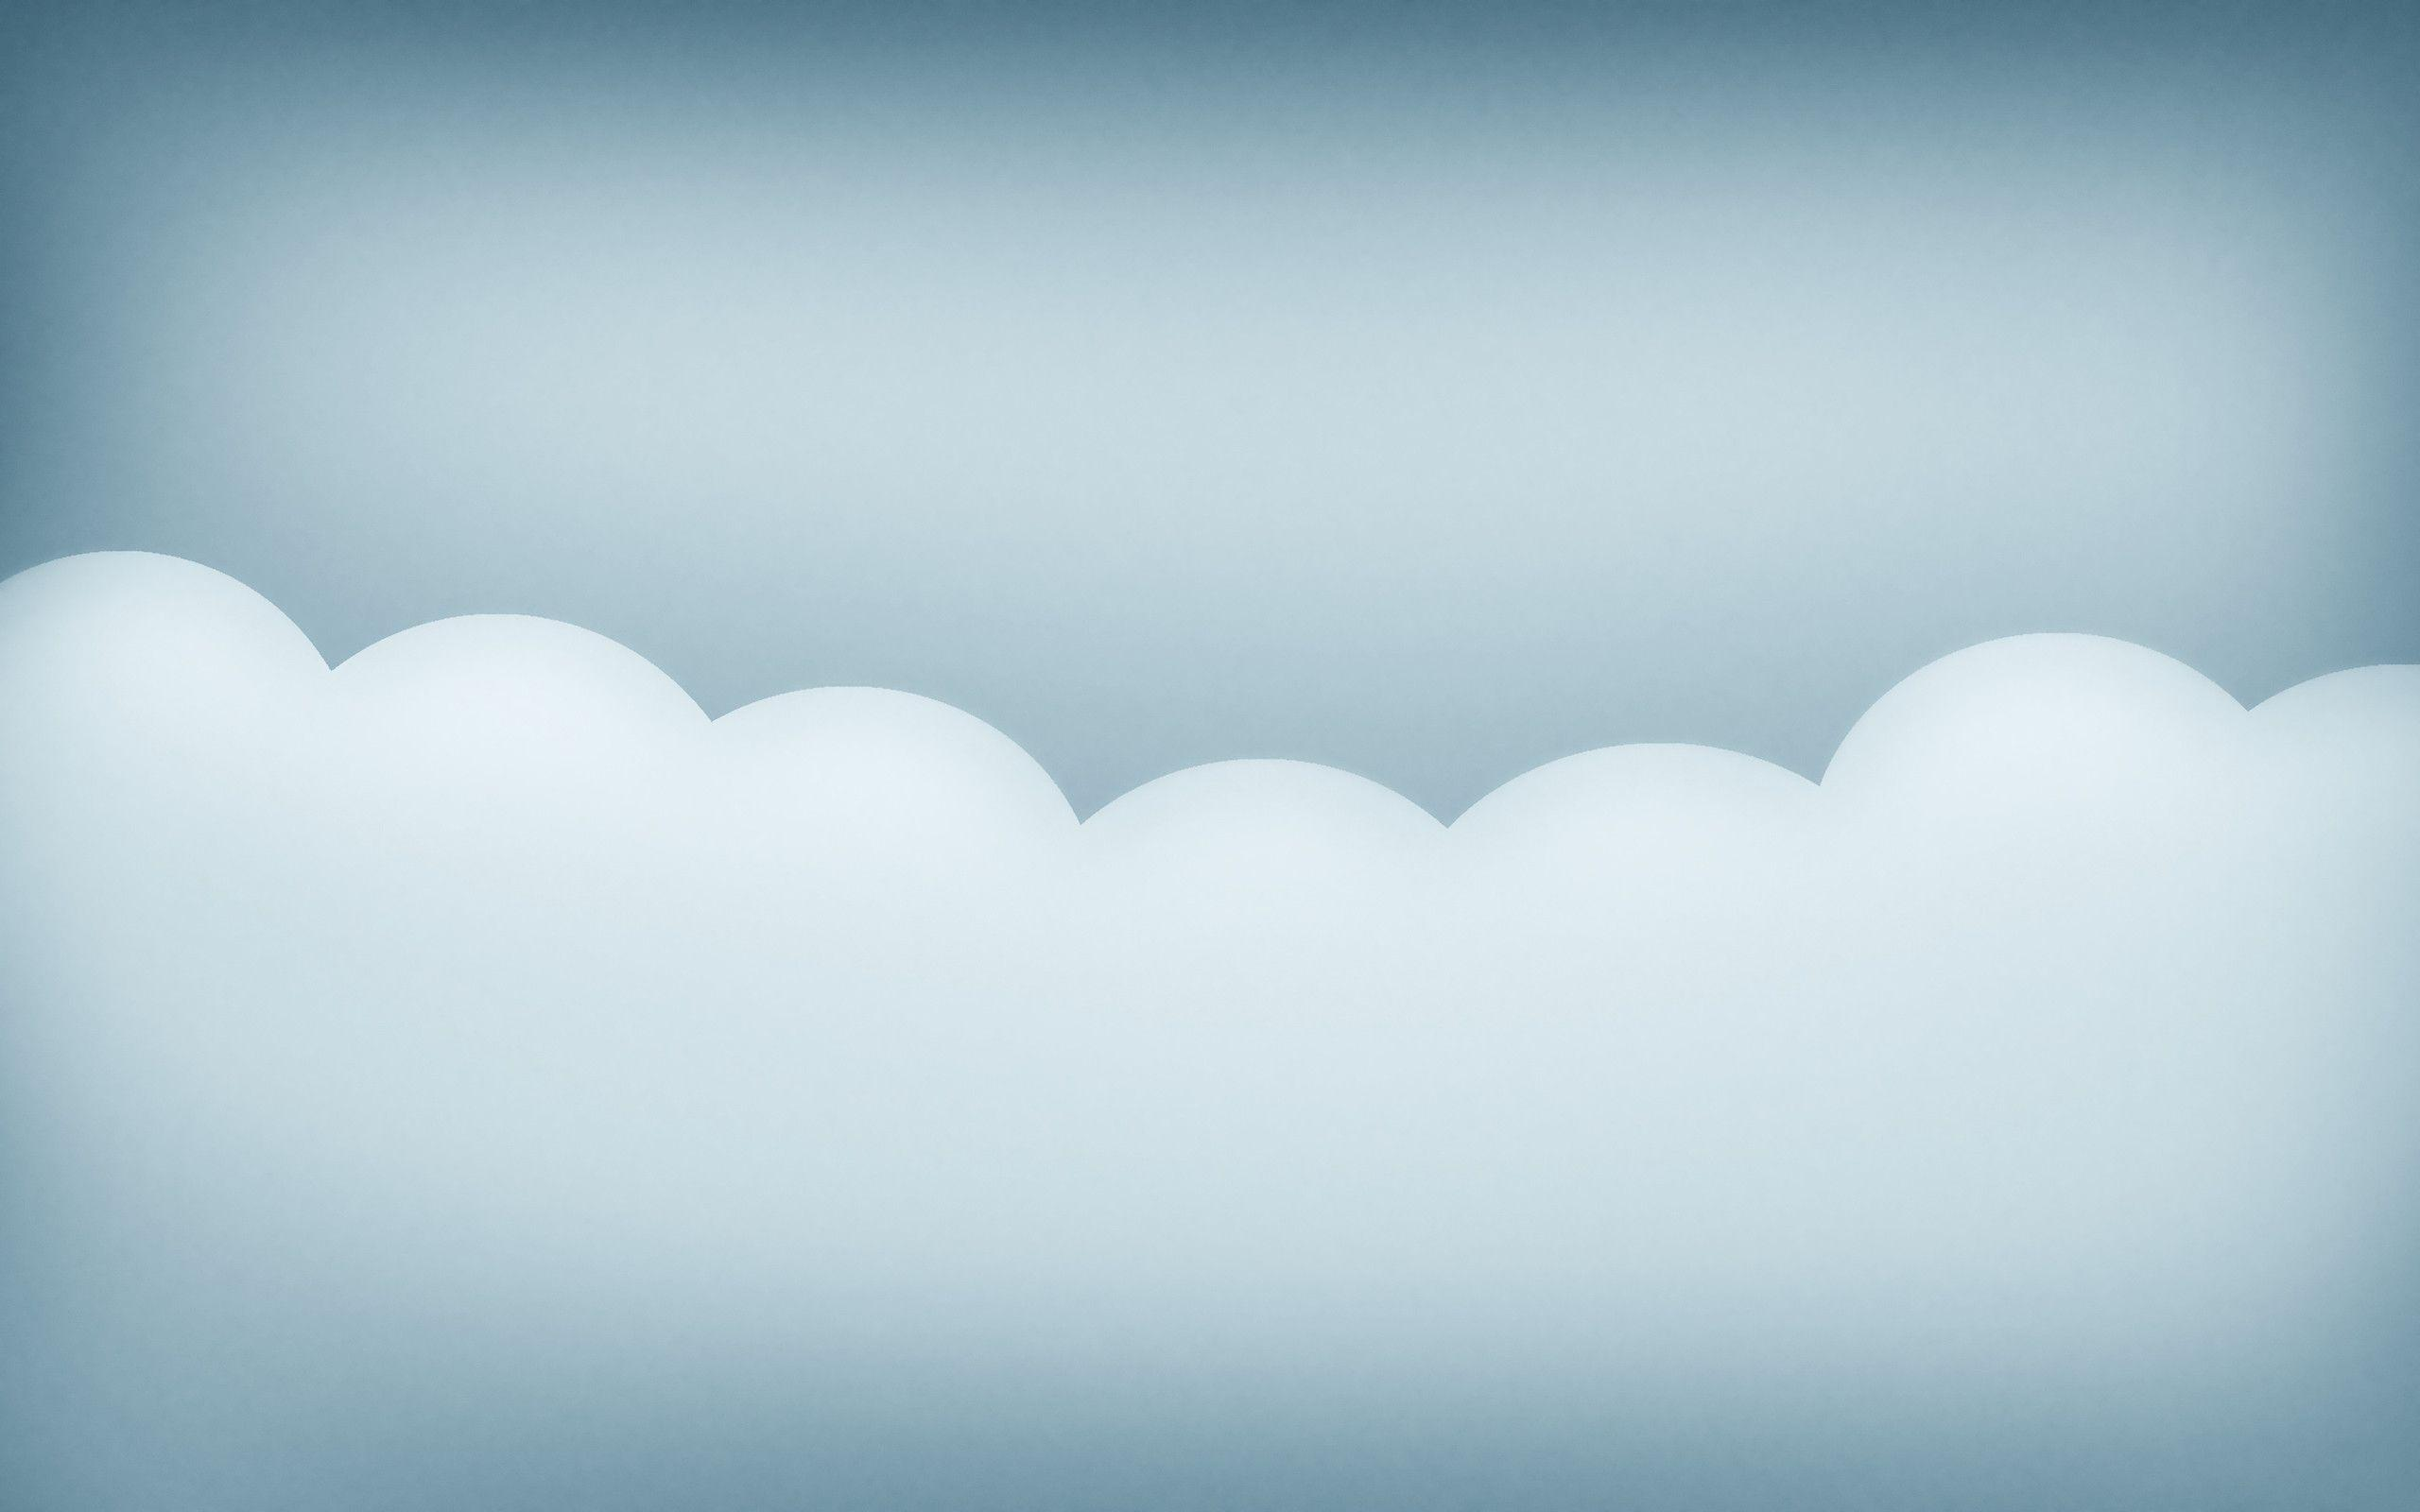 soft-wolke-pure-backgrounds-wallpapers.jpg | Karl's Transport